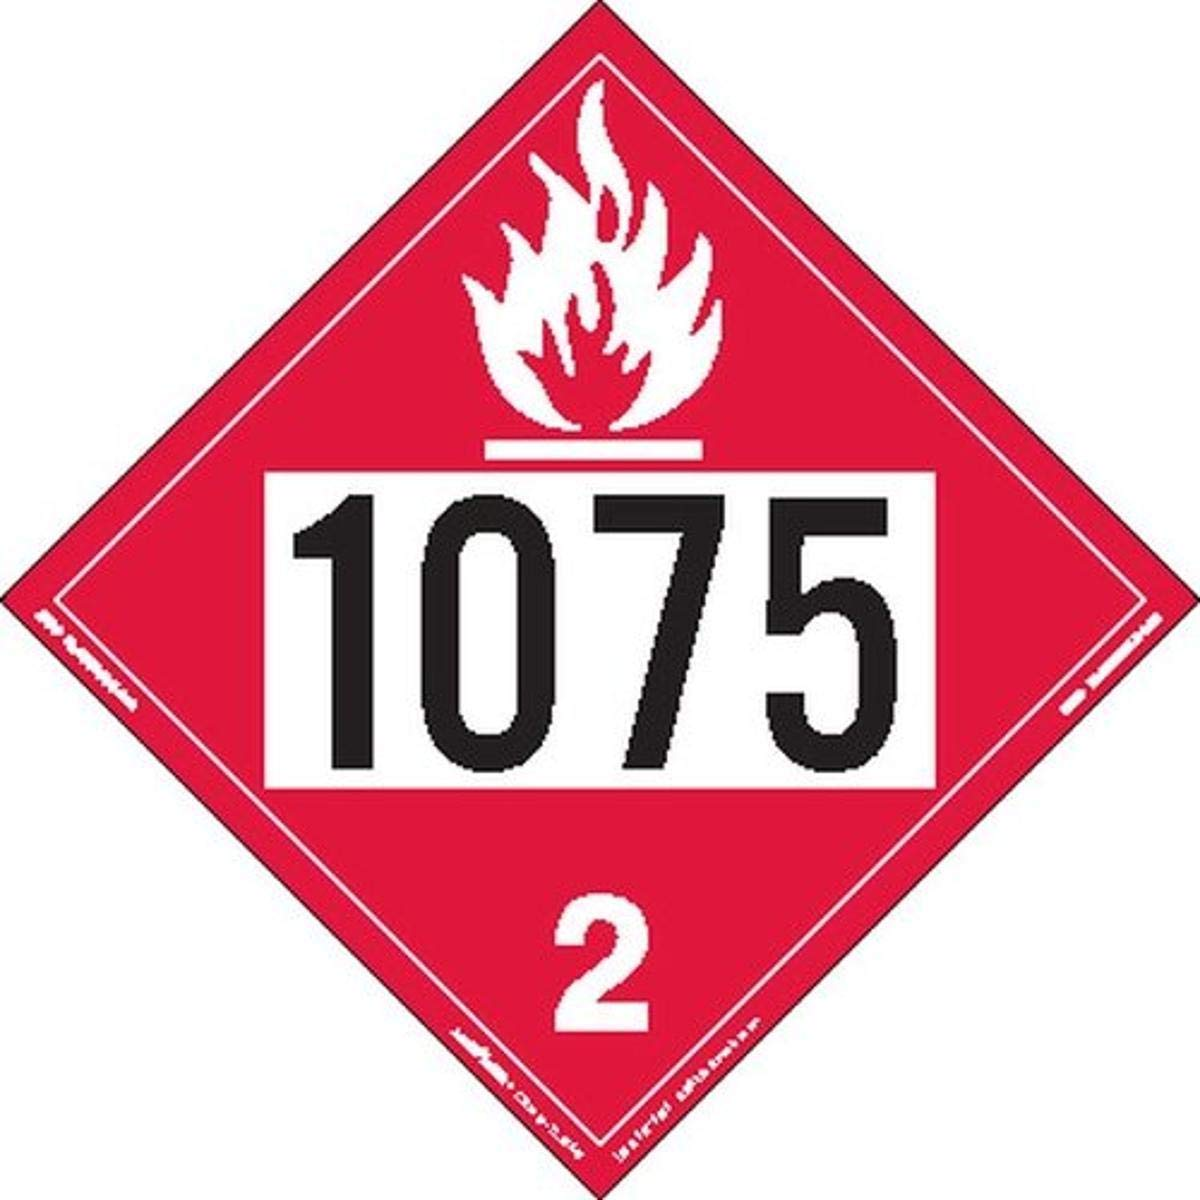 Sale Special Price Labelmaster Z-IDP UN 1075 Flammable Free shipping anywhere in the nation Placard Gas Hazmat Permanen